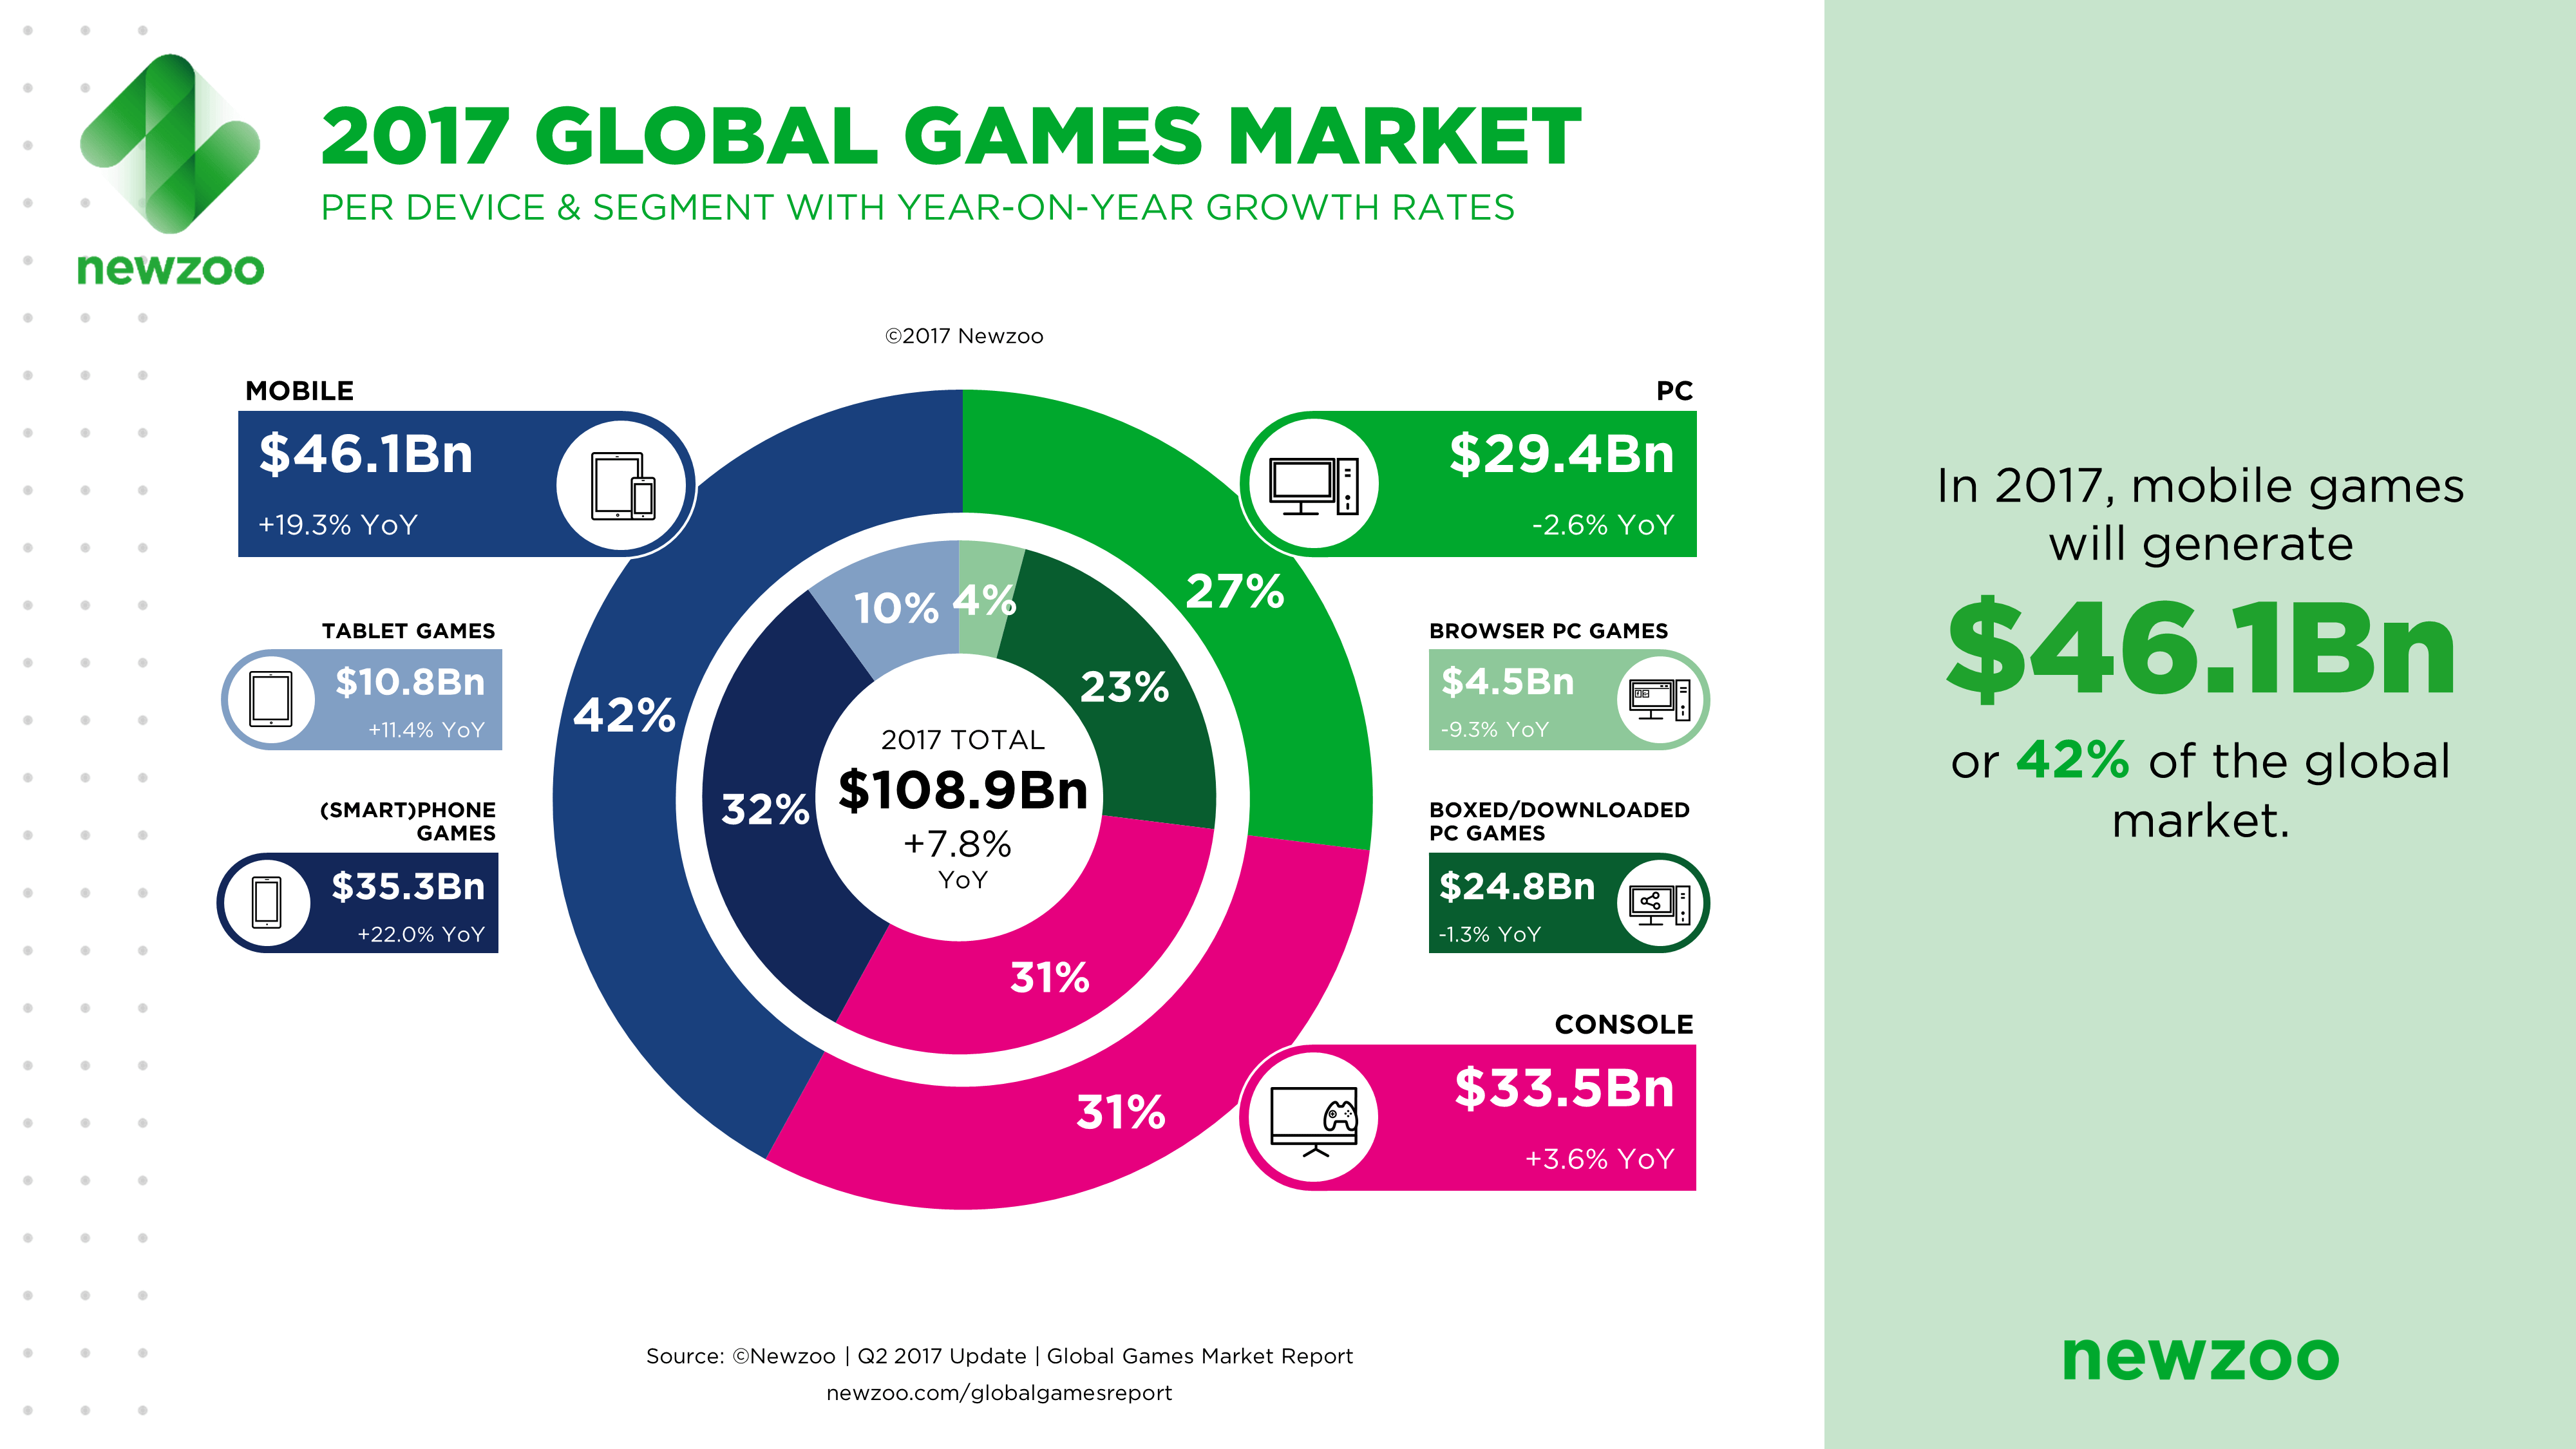 Mobile games are dominating the market